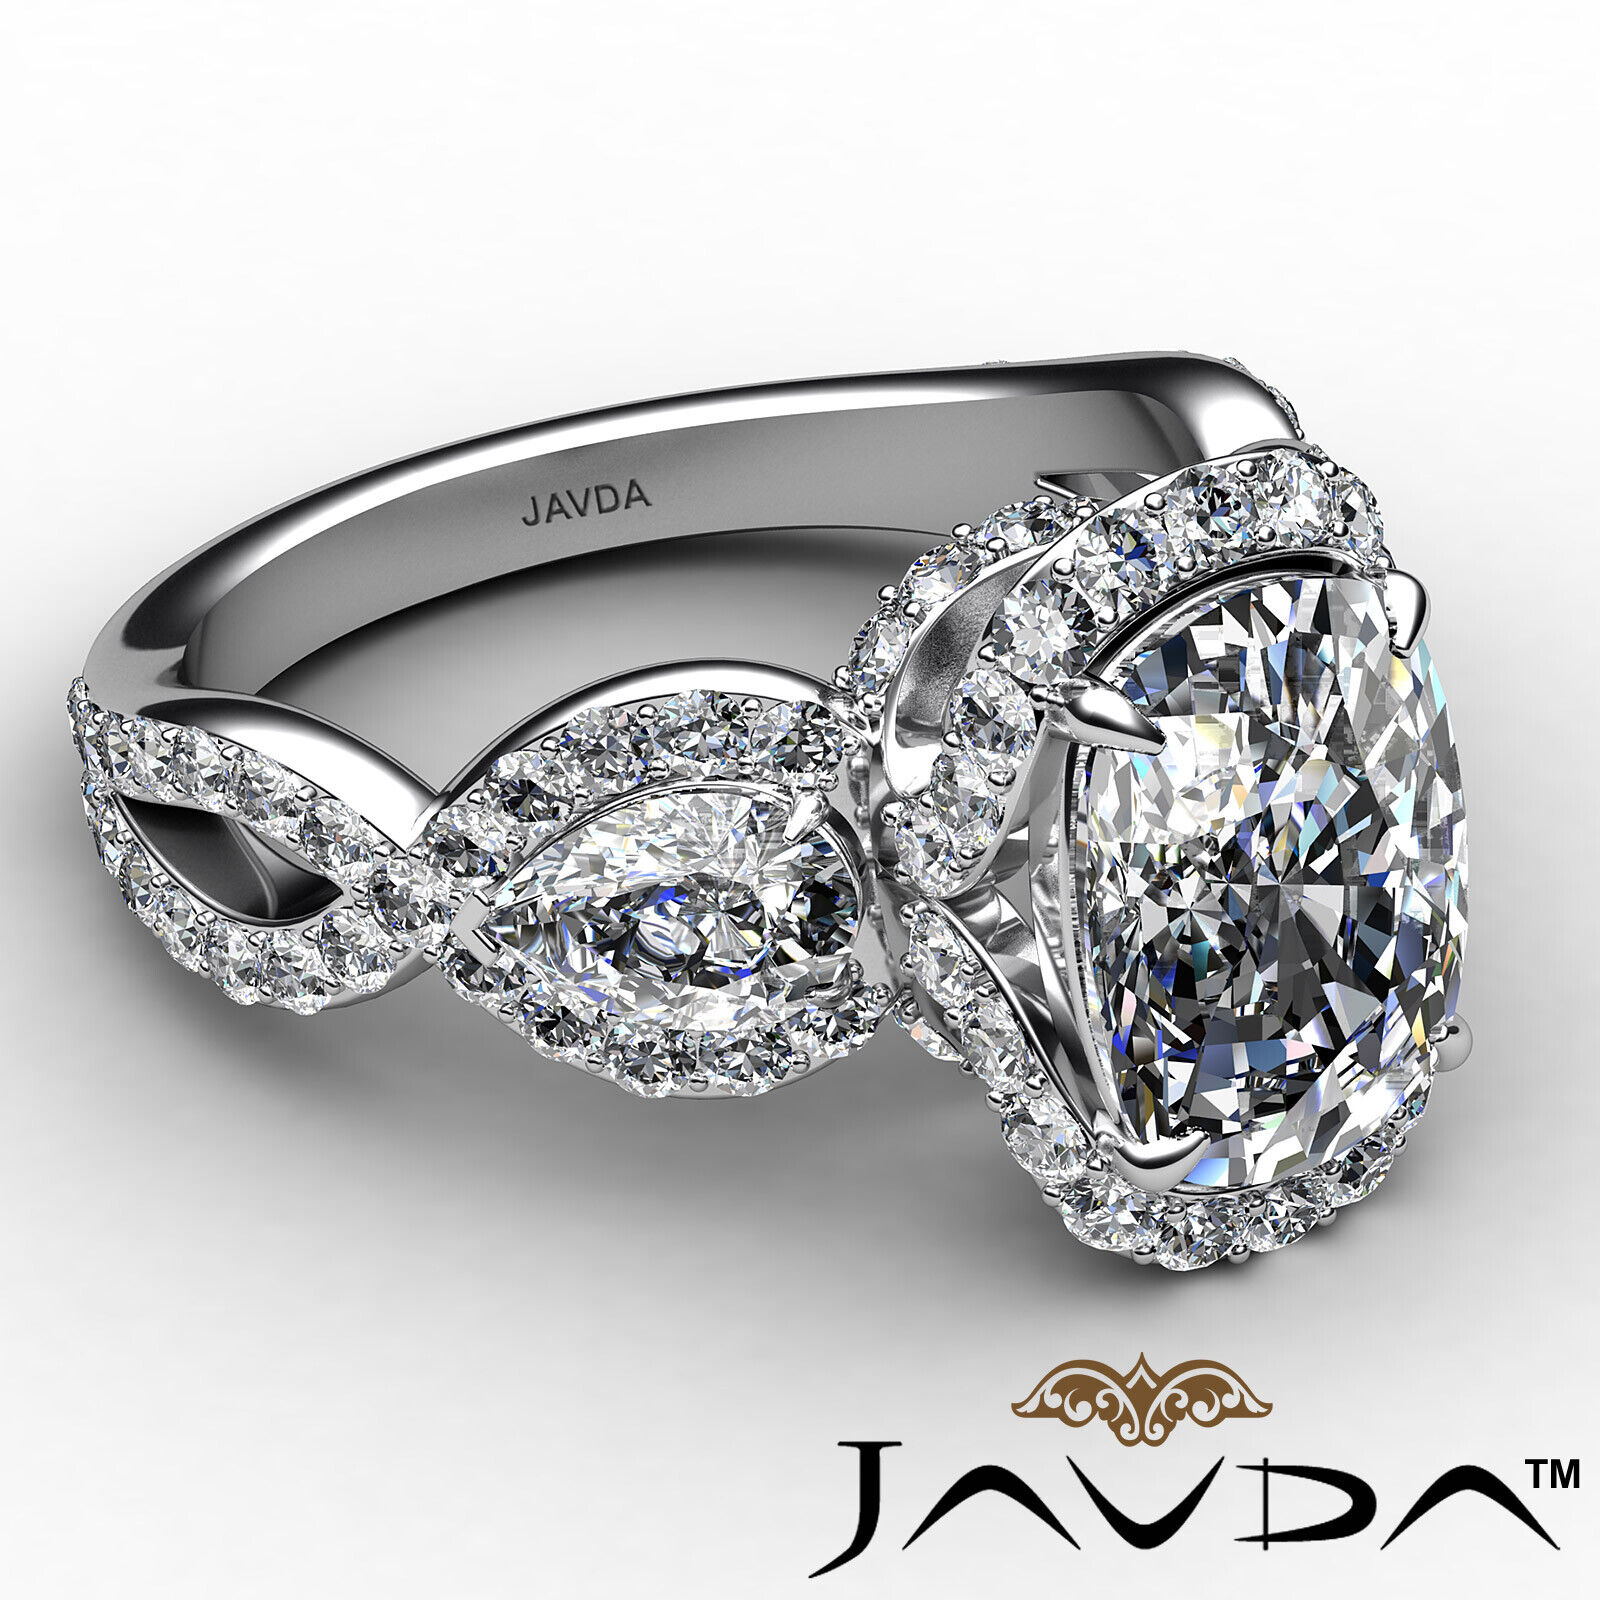 Halo Cushion Diamond Engagement Ring GIA Certified J Color & VS2 clarity 2.4 ctw 6